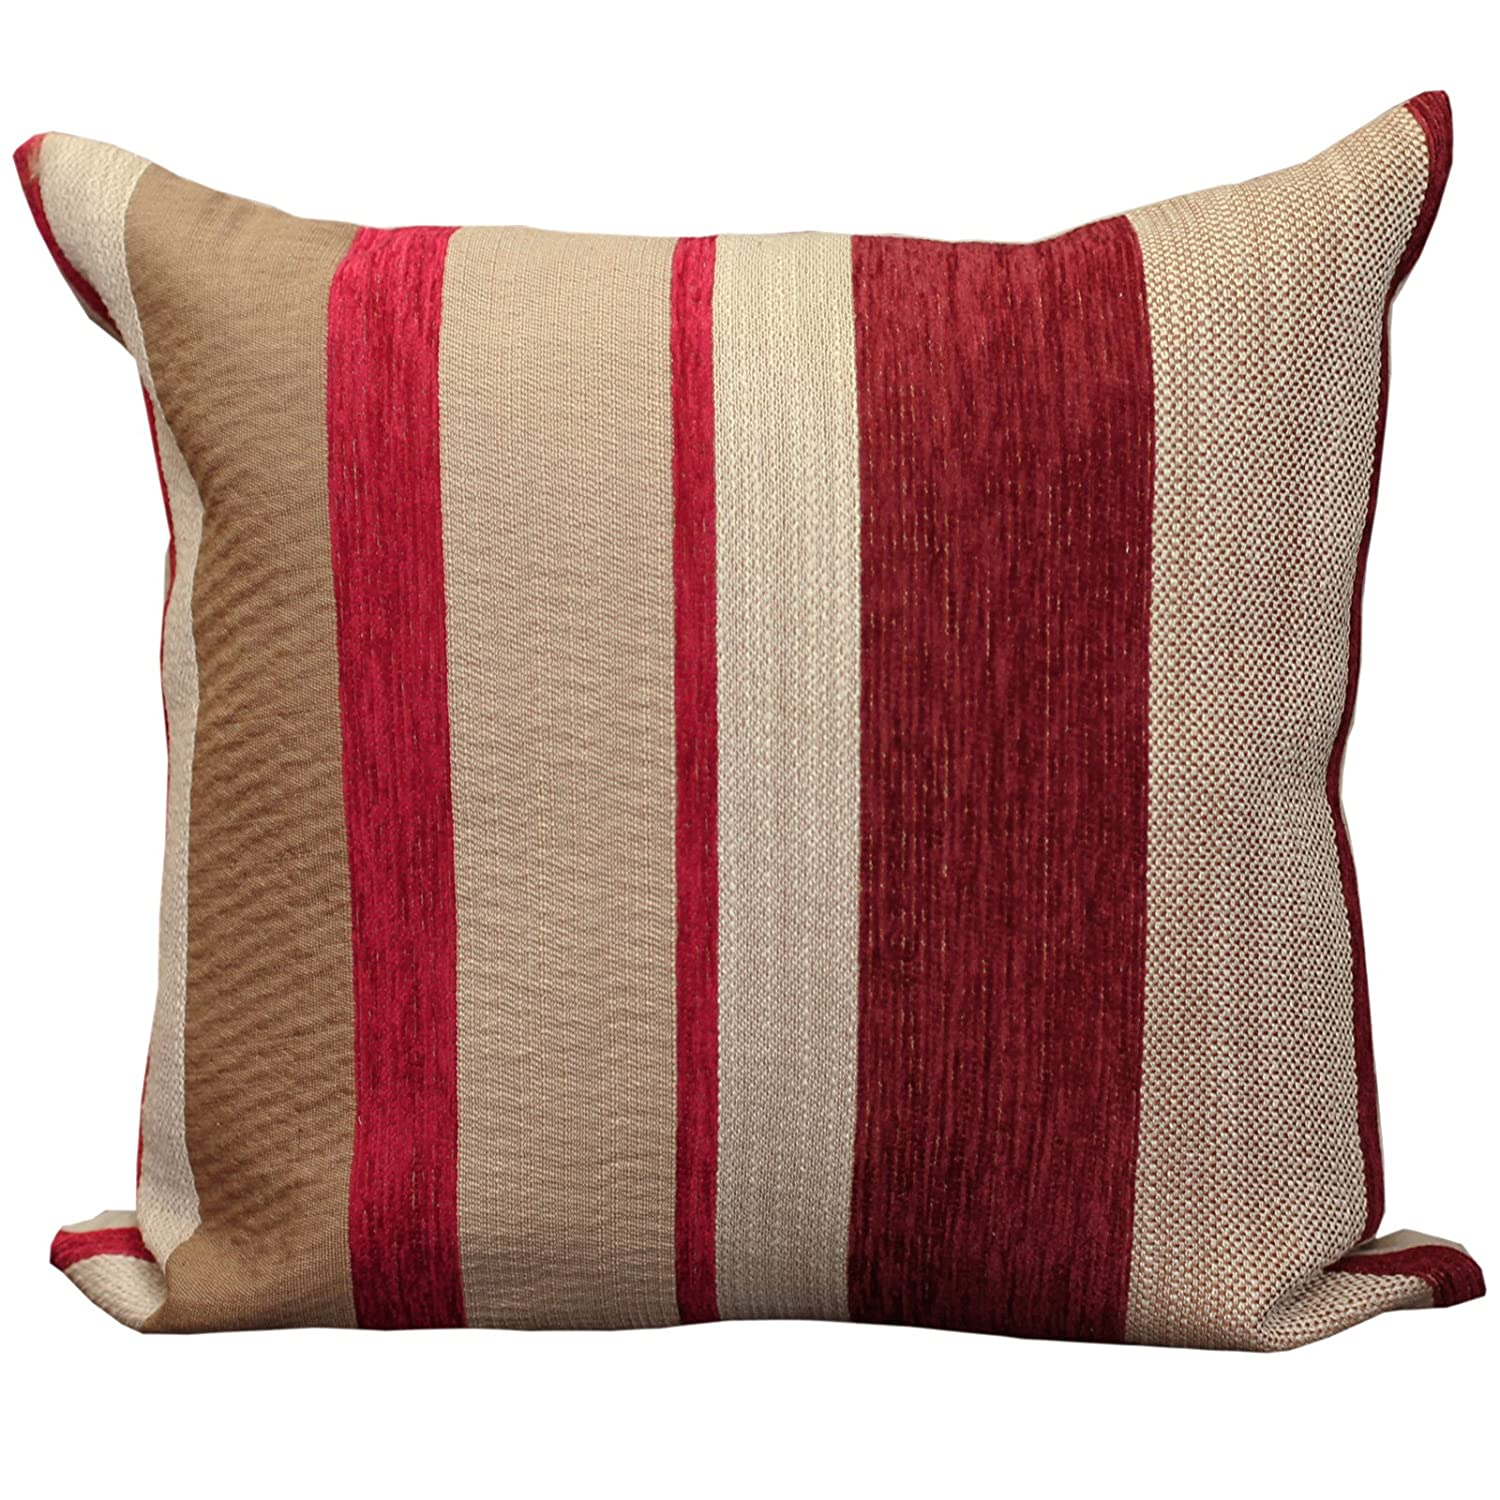 Just Contempo Chenille Striped Cushion Cover Red 17x17 inches